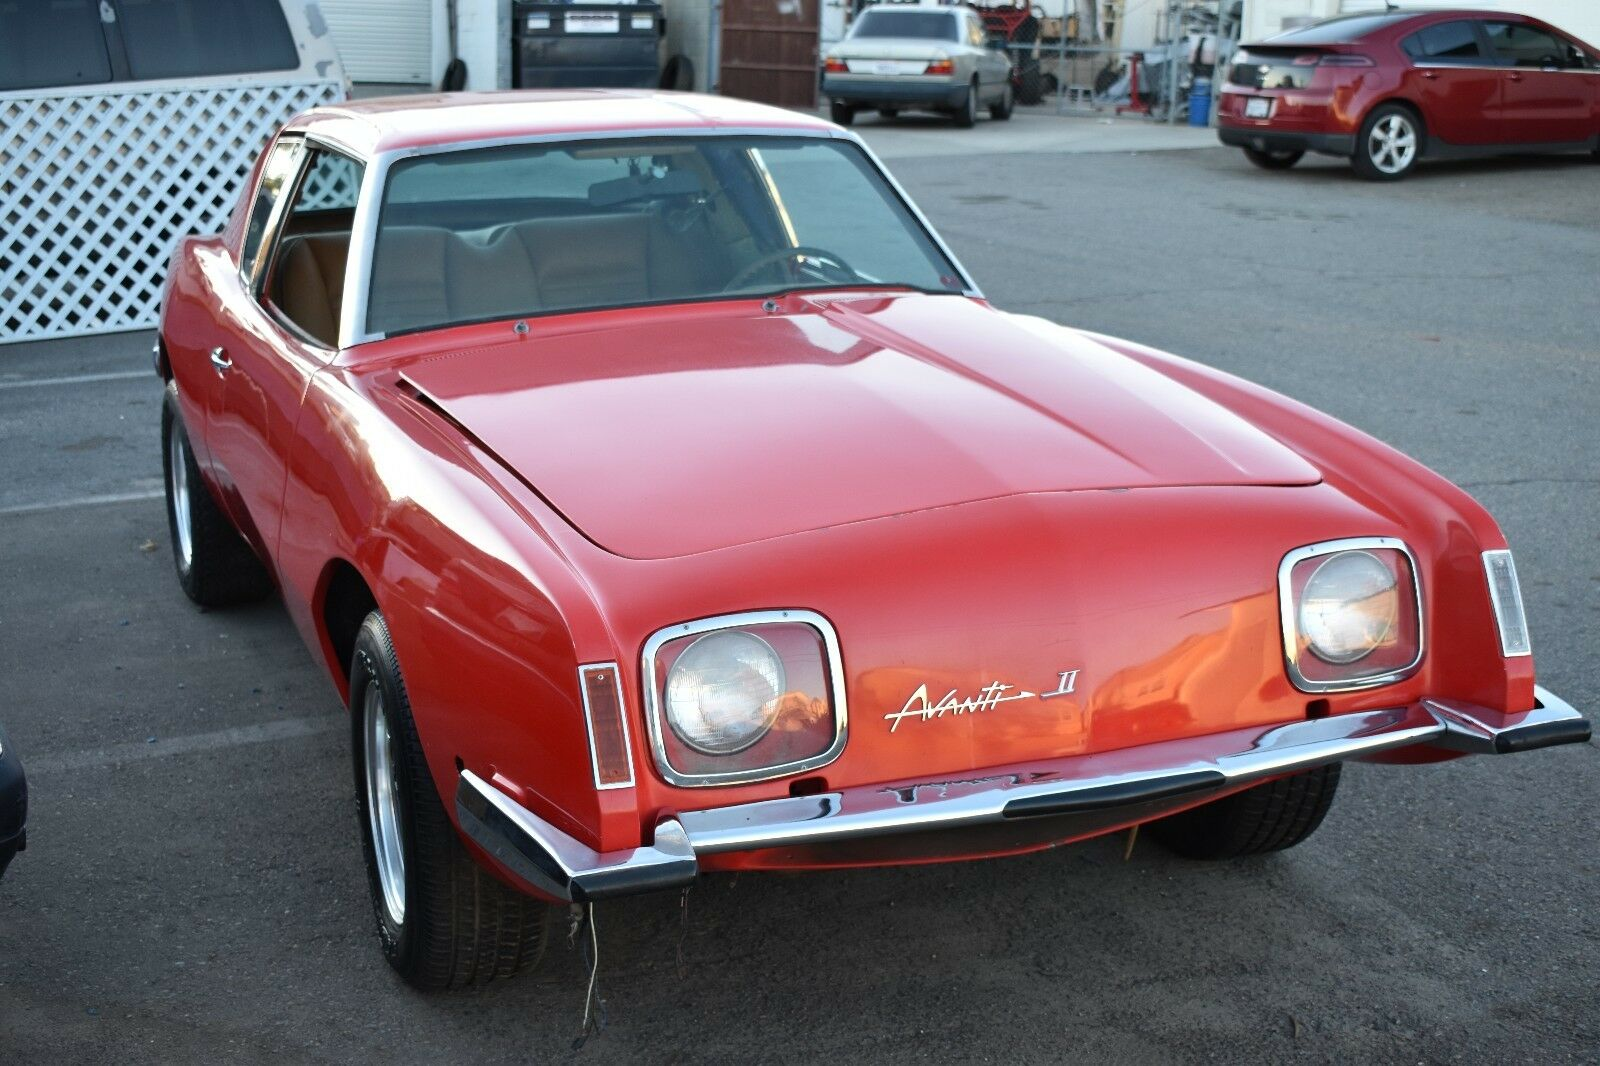 1971 Studebaker Avanti II: 1971 Studebaker Avanti, Rock Stars Project Car 350 V8  Lots of parts included